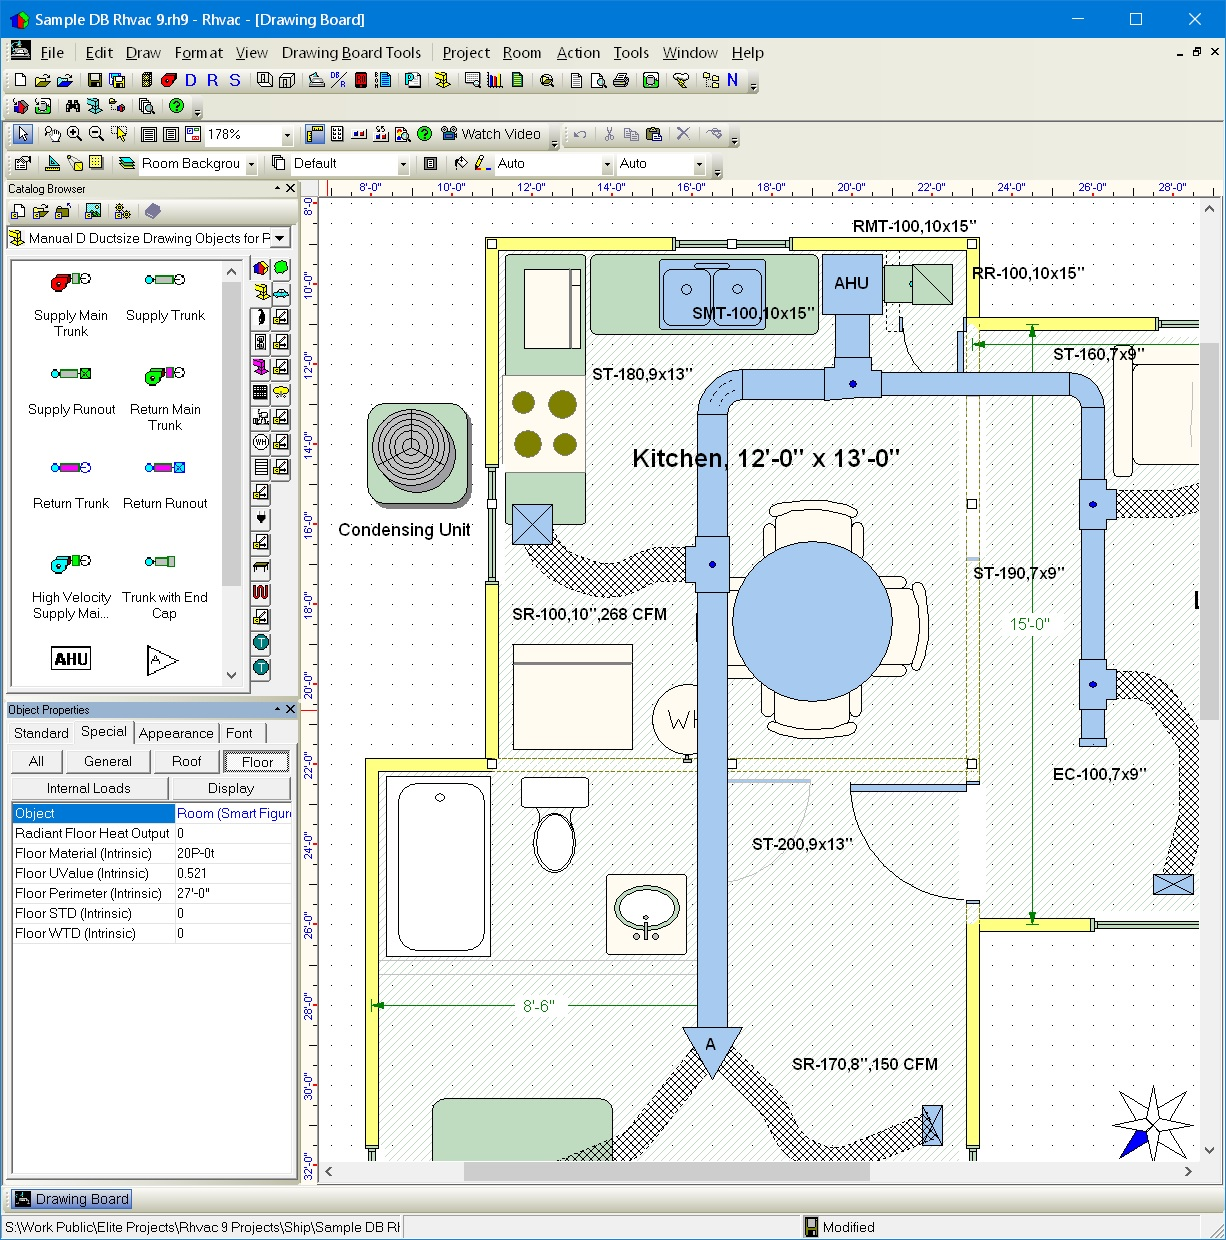 Elite Software Rhvac Piping Diagram Program Drawing Board Window